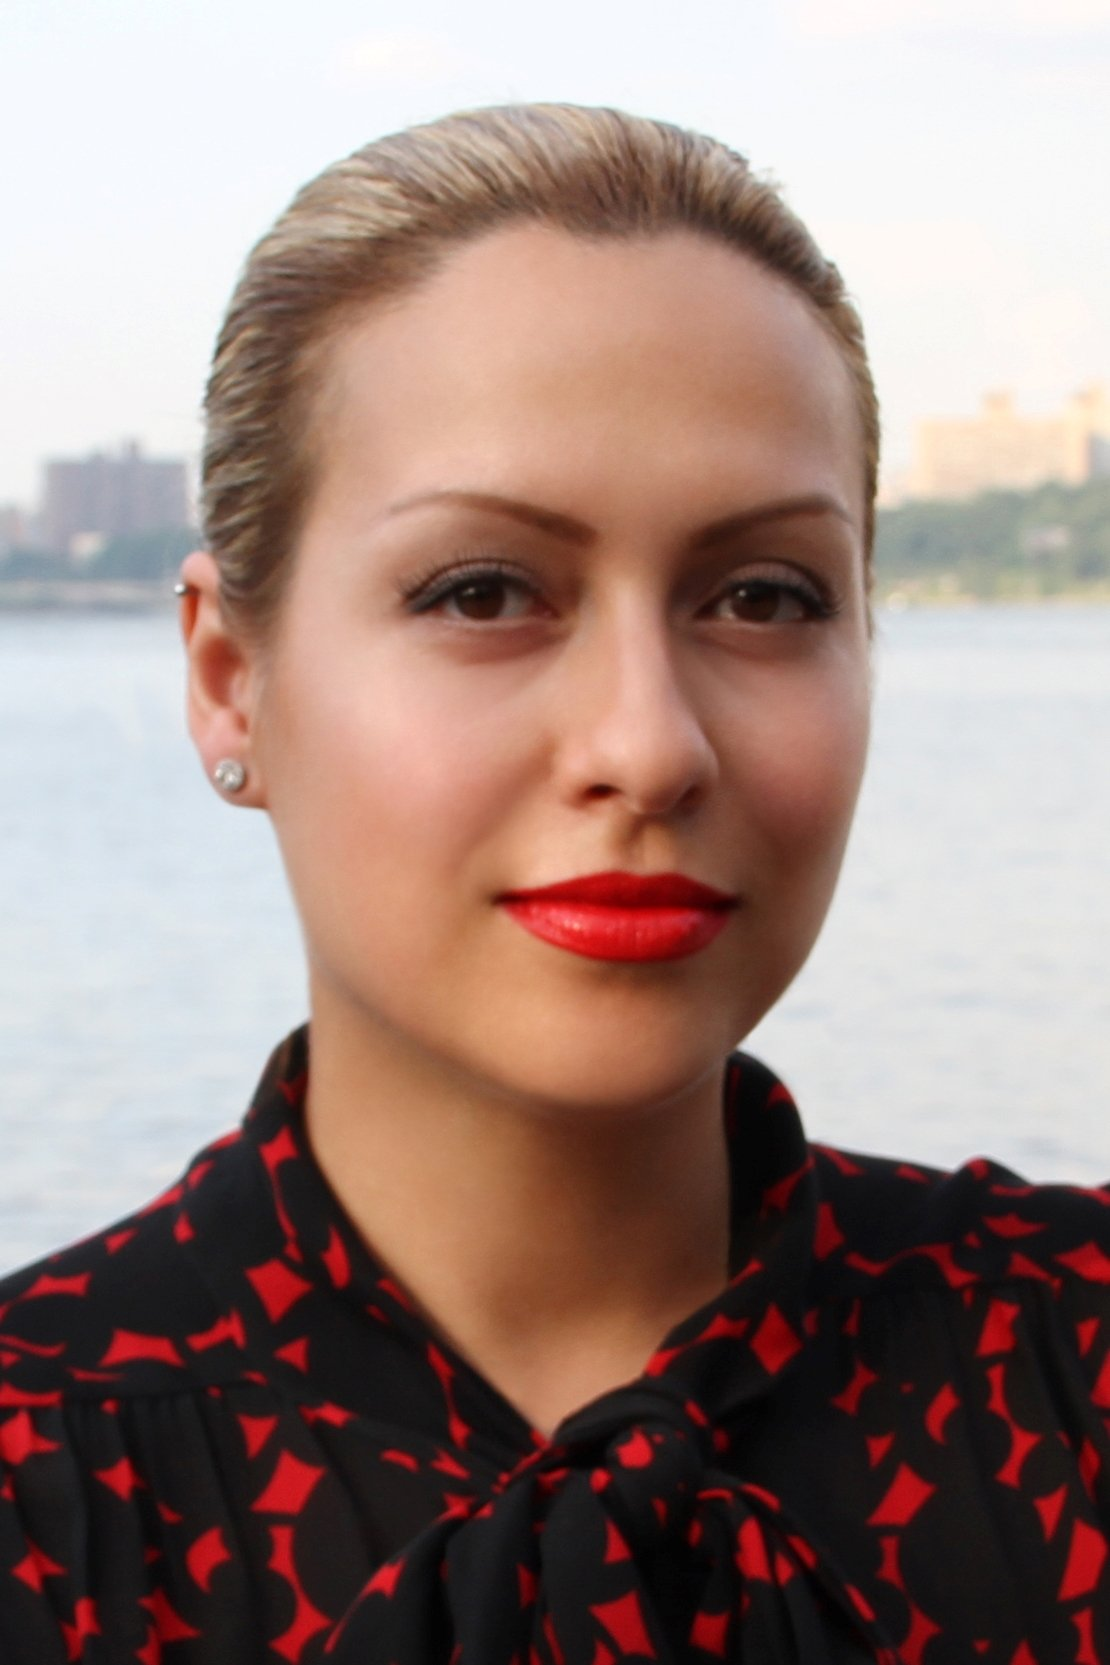 Dasha Minina, Beautician List founder and CEO, who is also a licensed nail technician. Dasha Minina